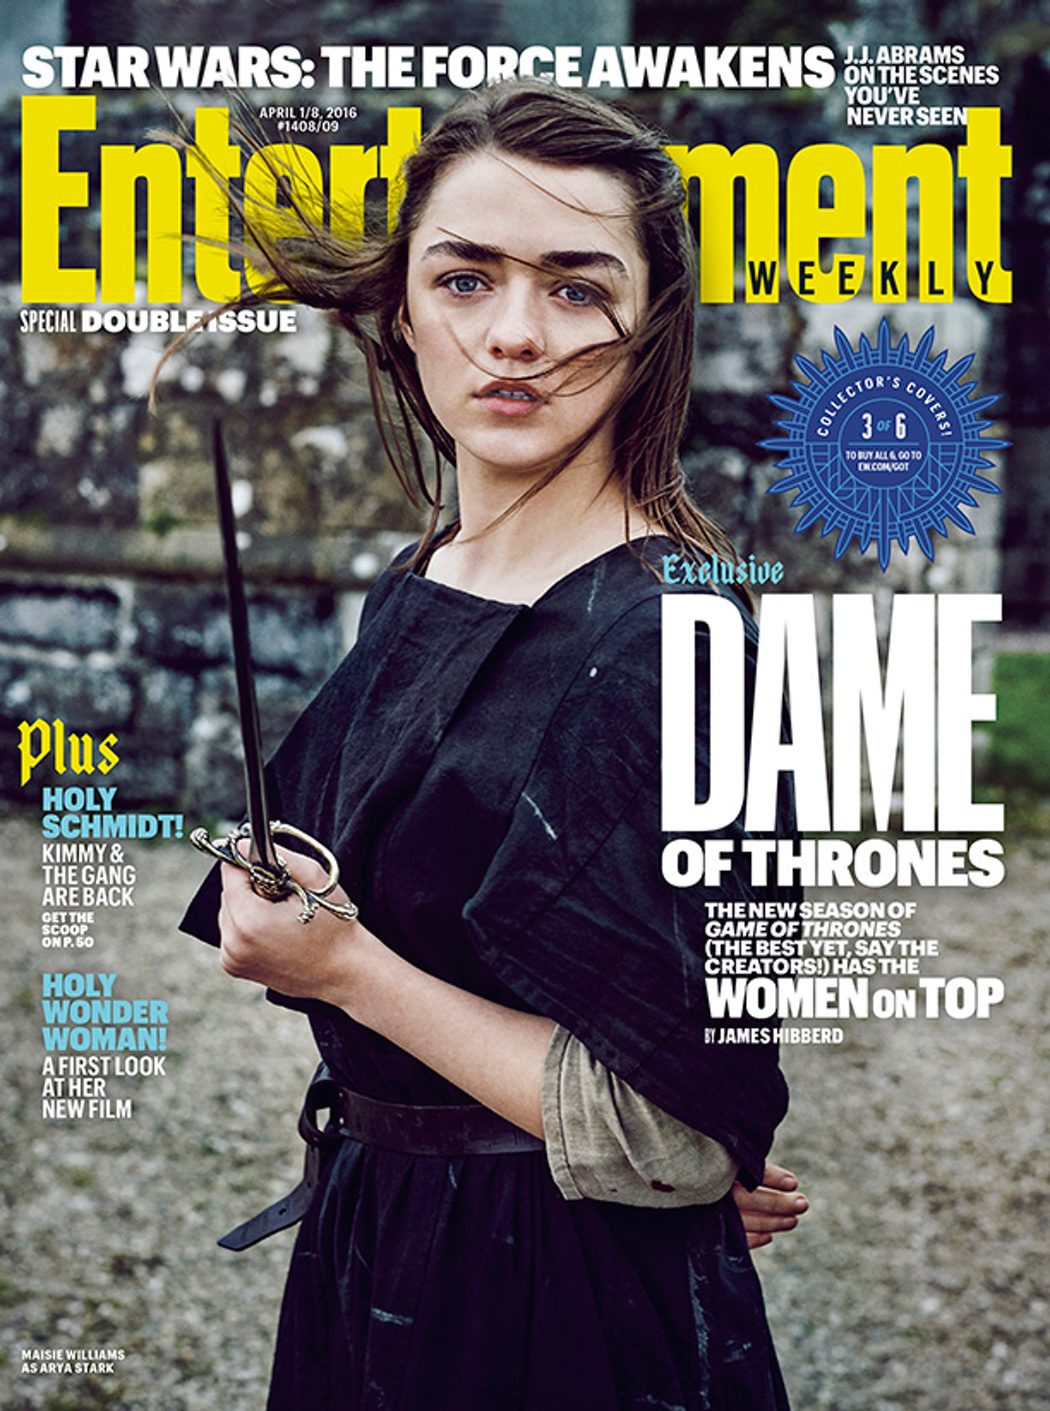 Maisie Williams portada Entertainment Weekly